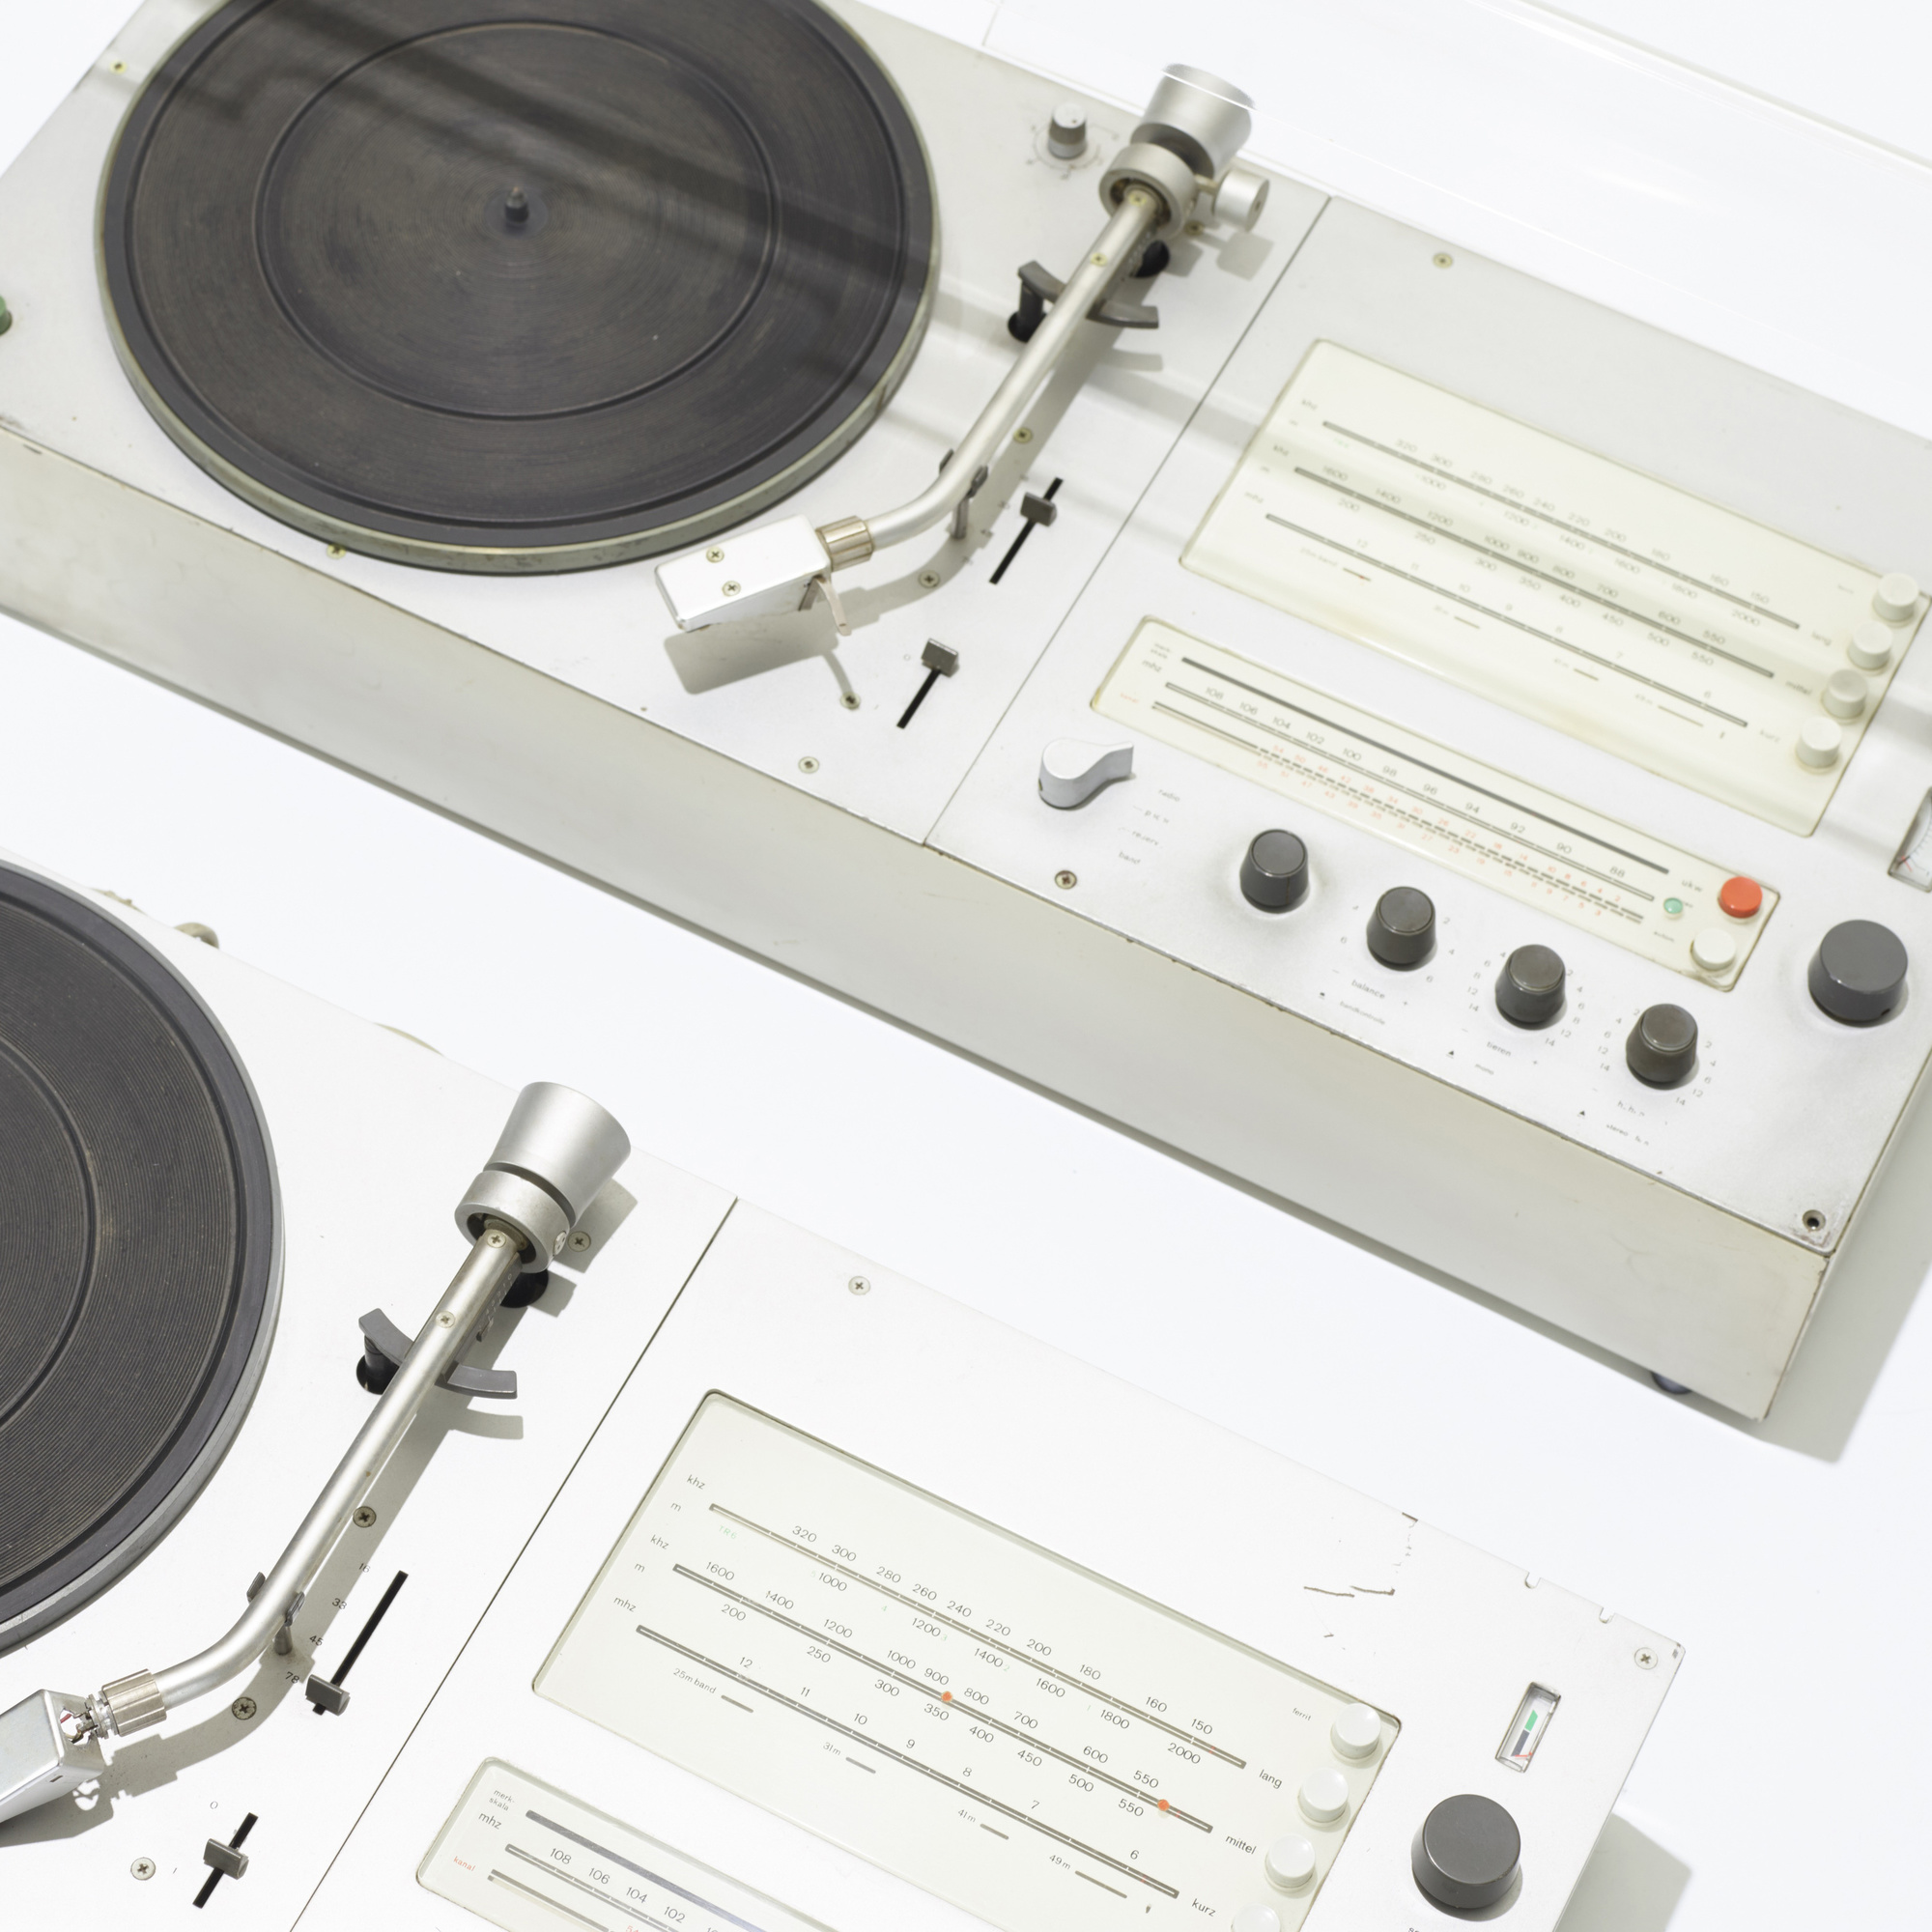 369: Dieter Rams / Audio 1 Radio-Phonographs with speakers, pair (2 of 2)